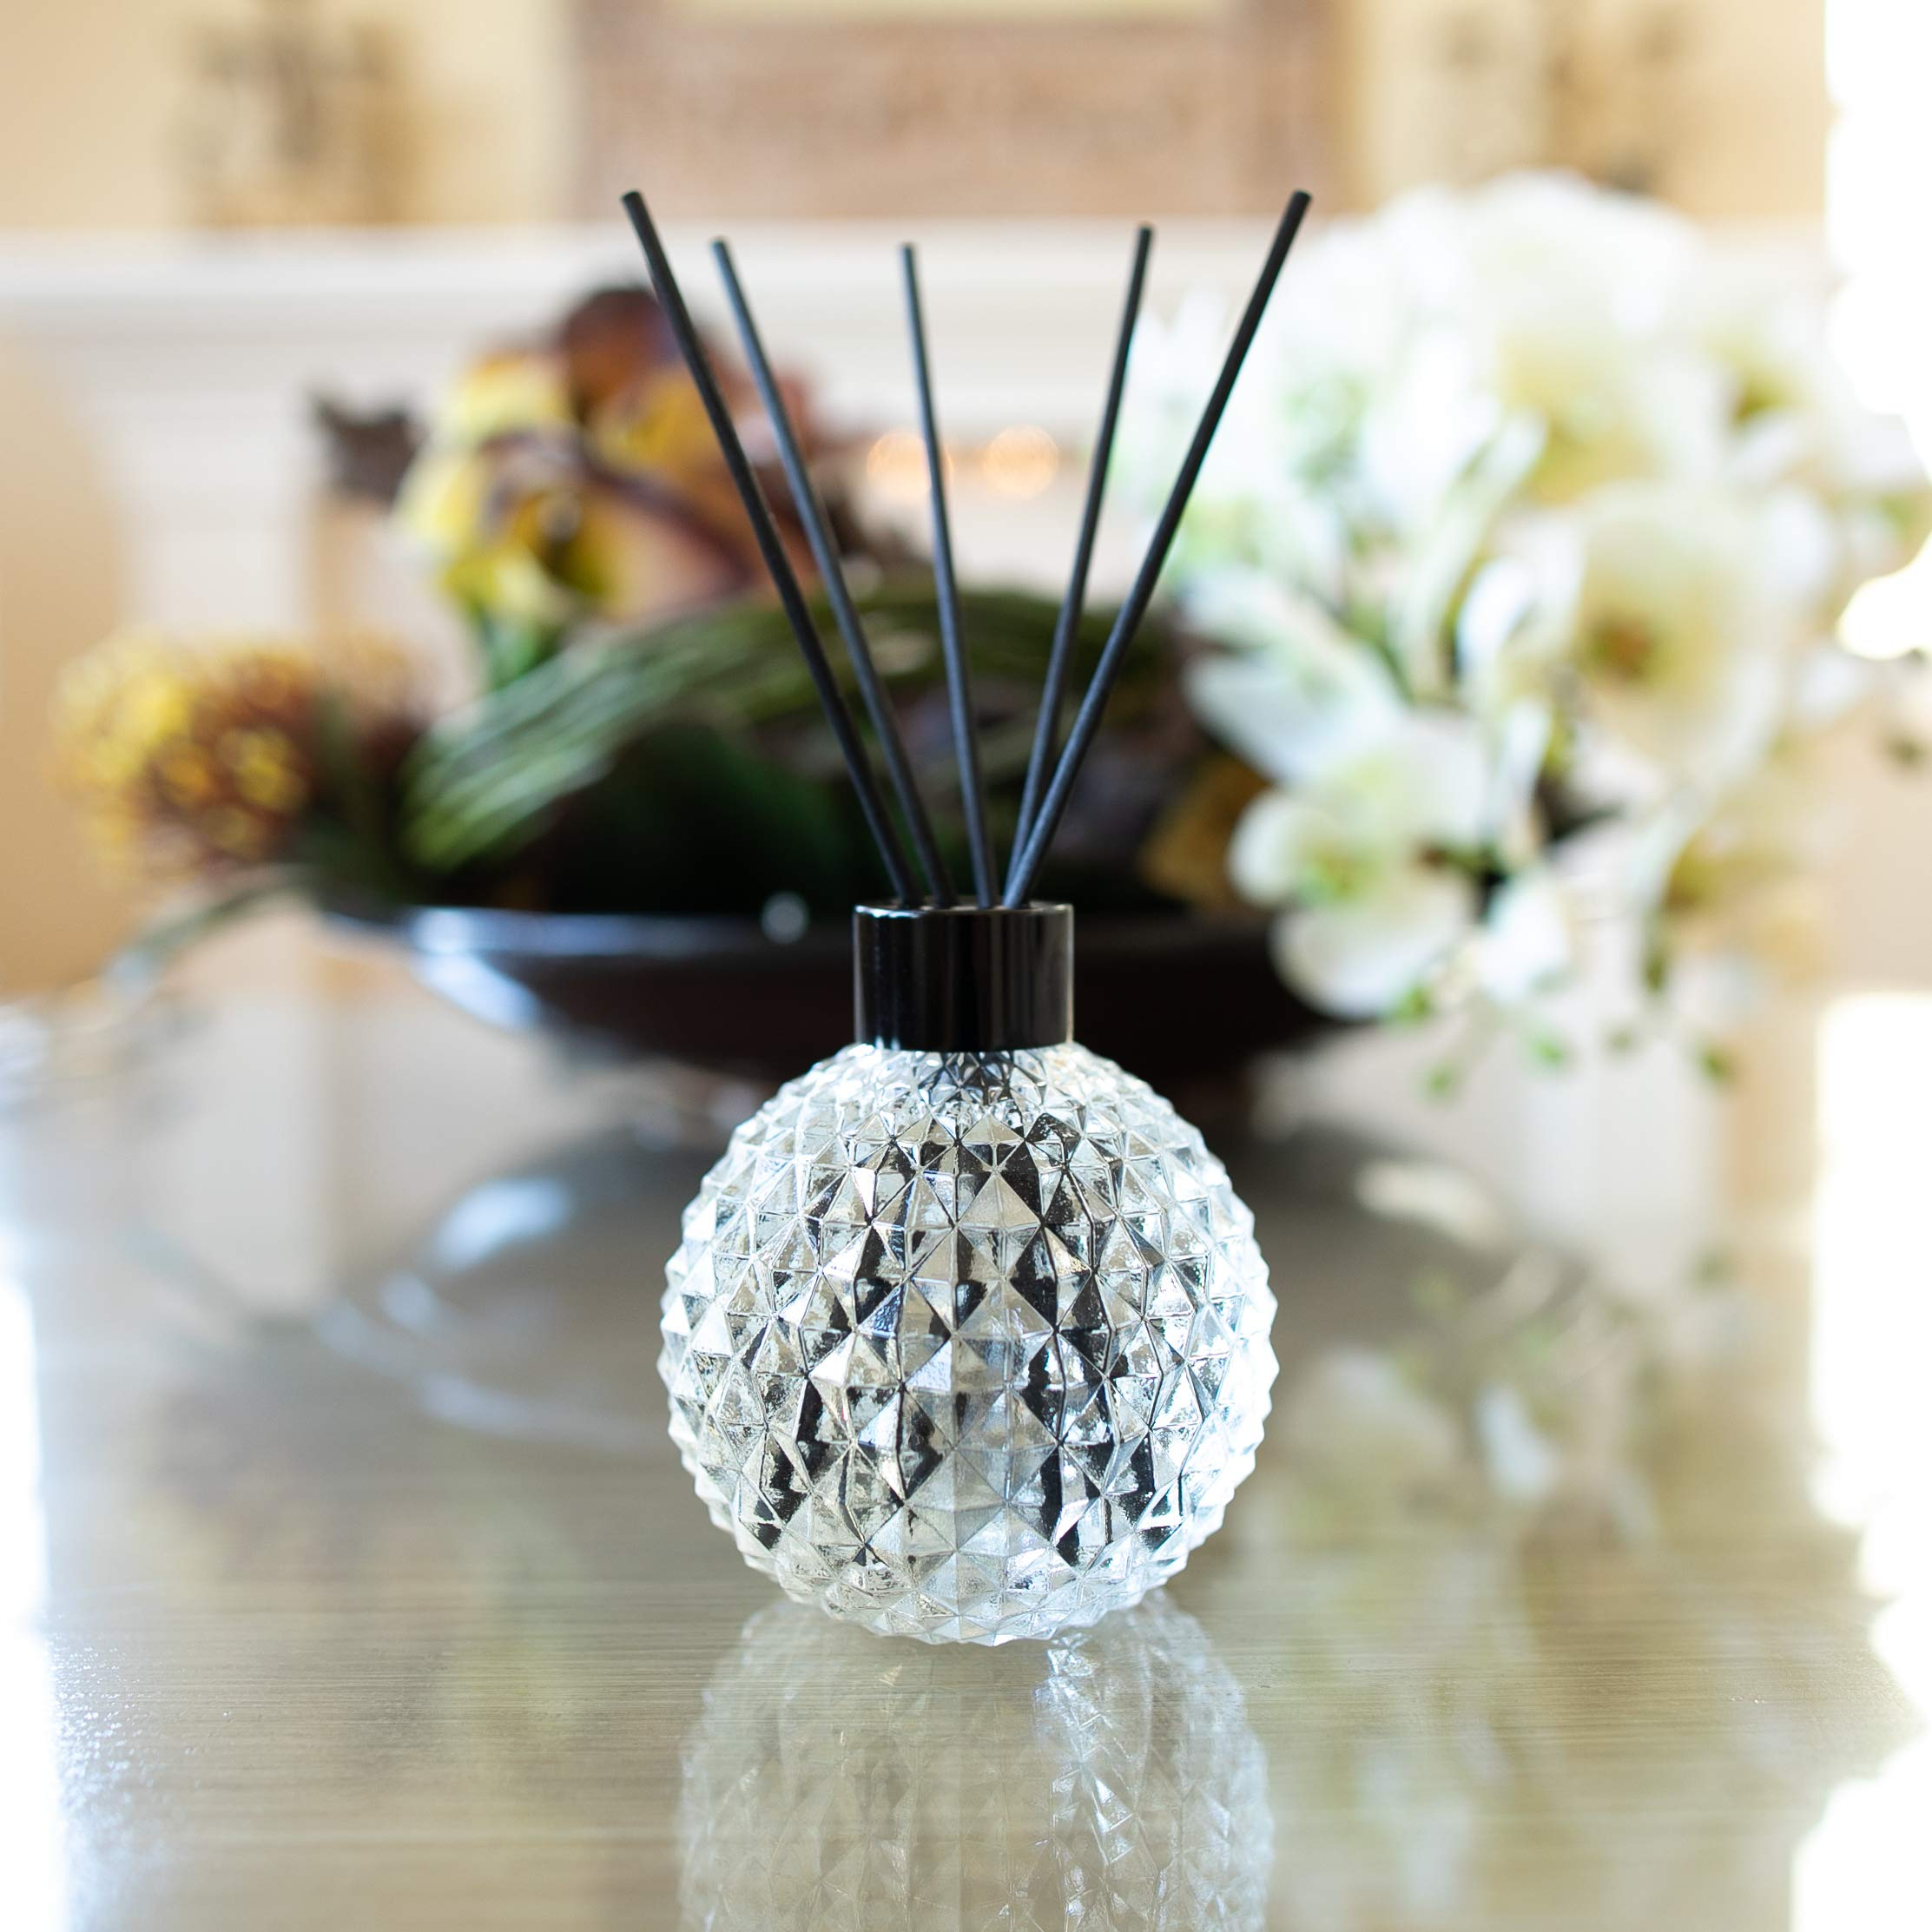 Optatum Reed Diffuser Set - 100% Natural Extract Alcohol-Free Home Fragrance | Sparkling Pomelo, Mint, and Vetiver Scent | Room Freshener, 100ml by Optatum (Image #2)